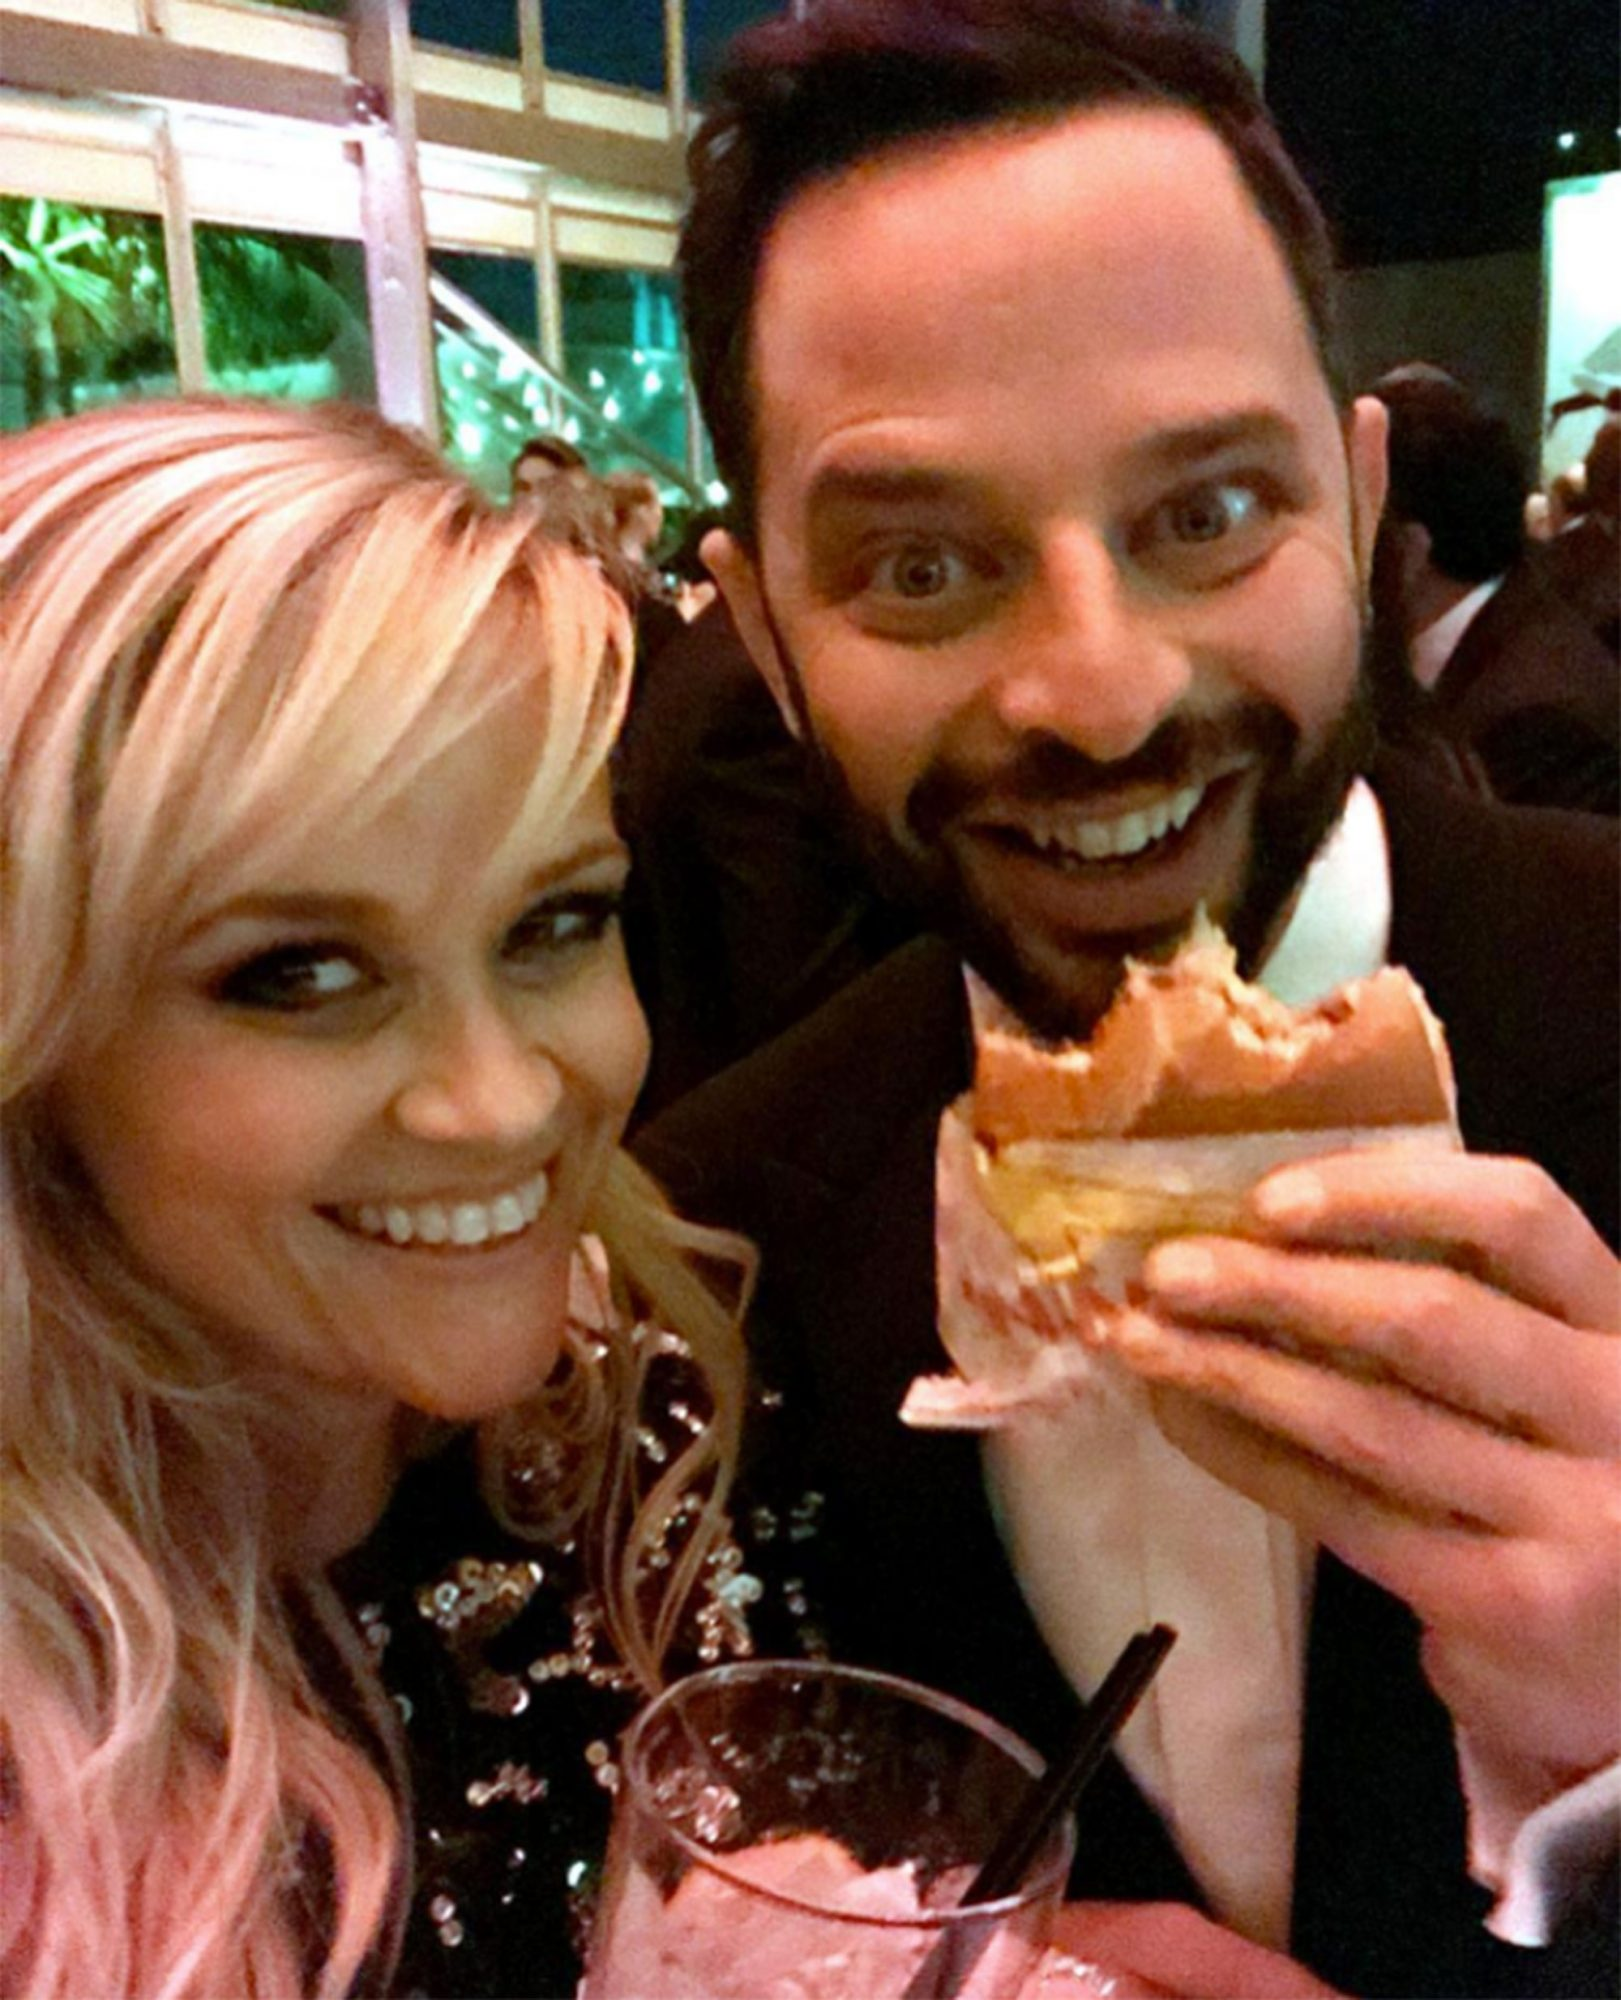 Reese Witherspoon In N Out burgerhttps://www.instagram.com/p/BRCZxklhb9w/